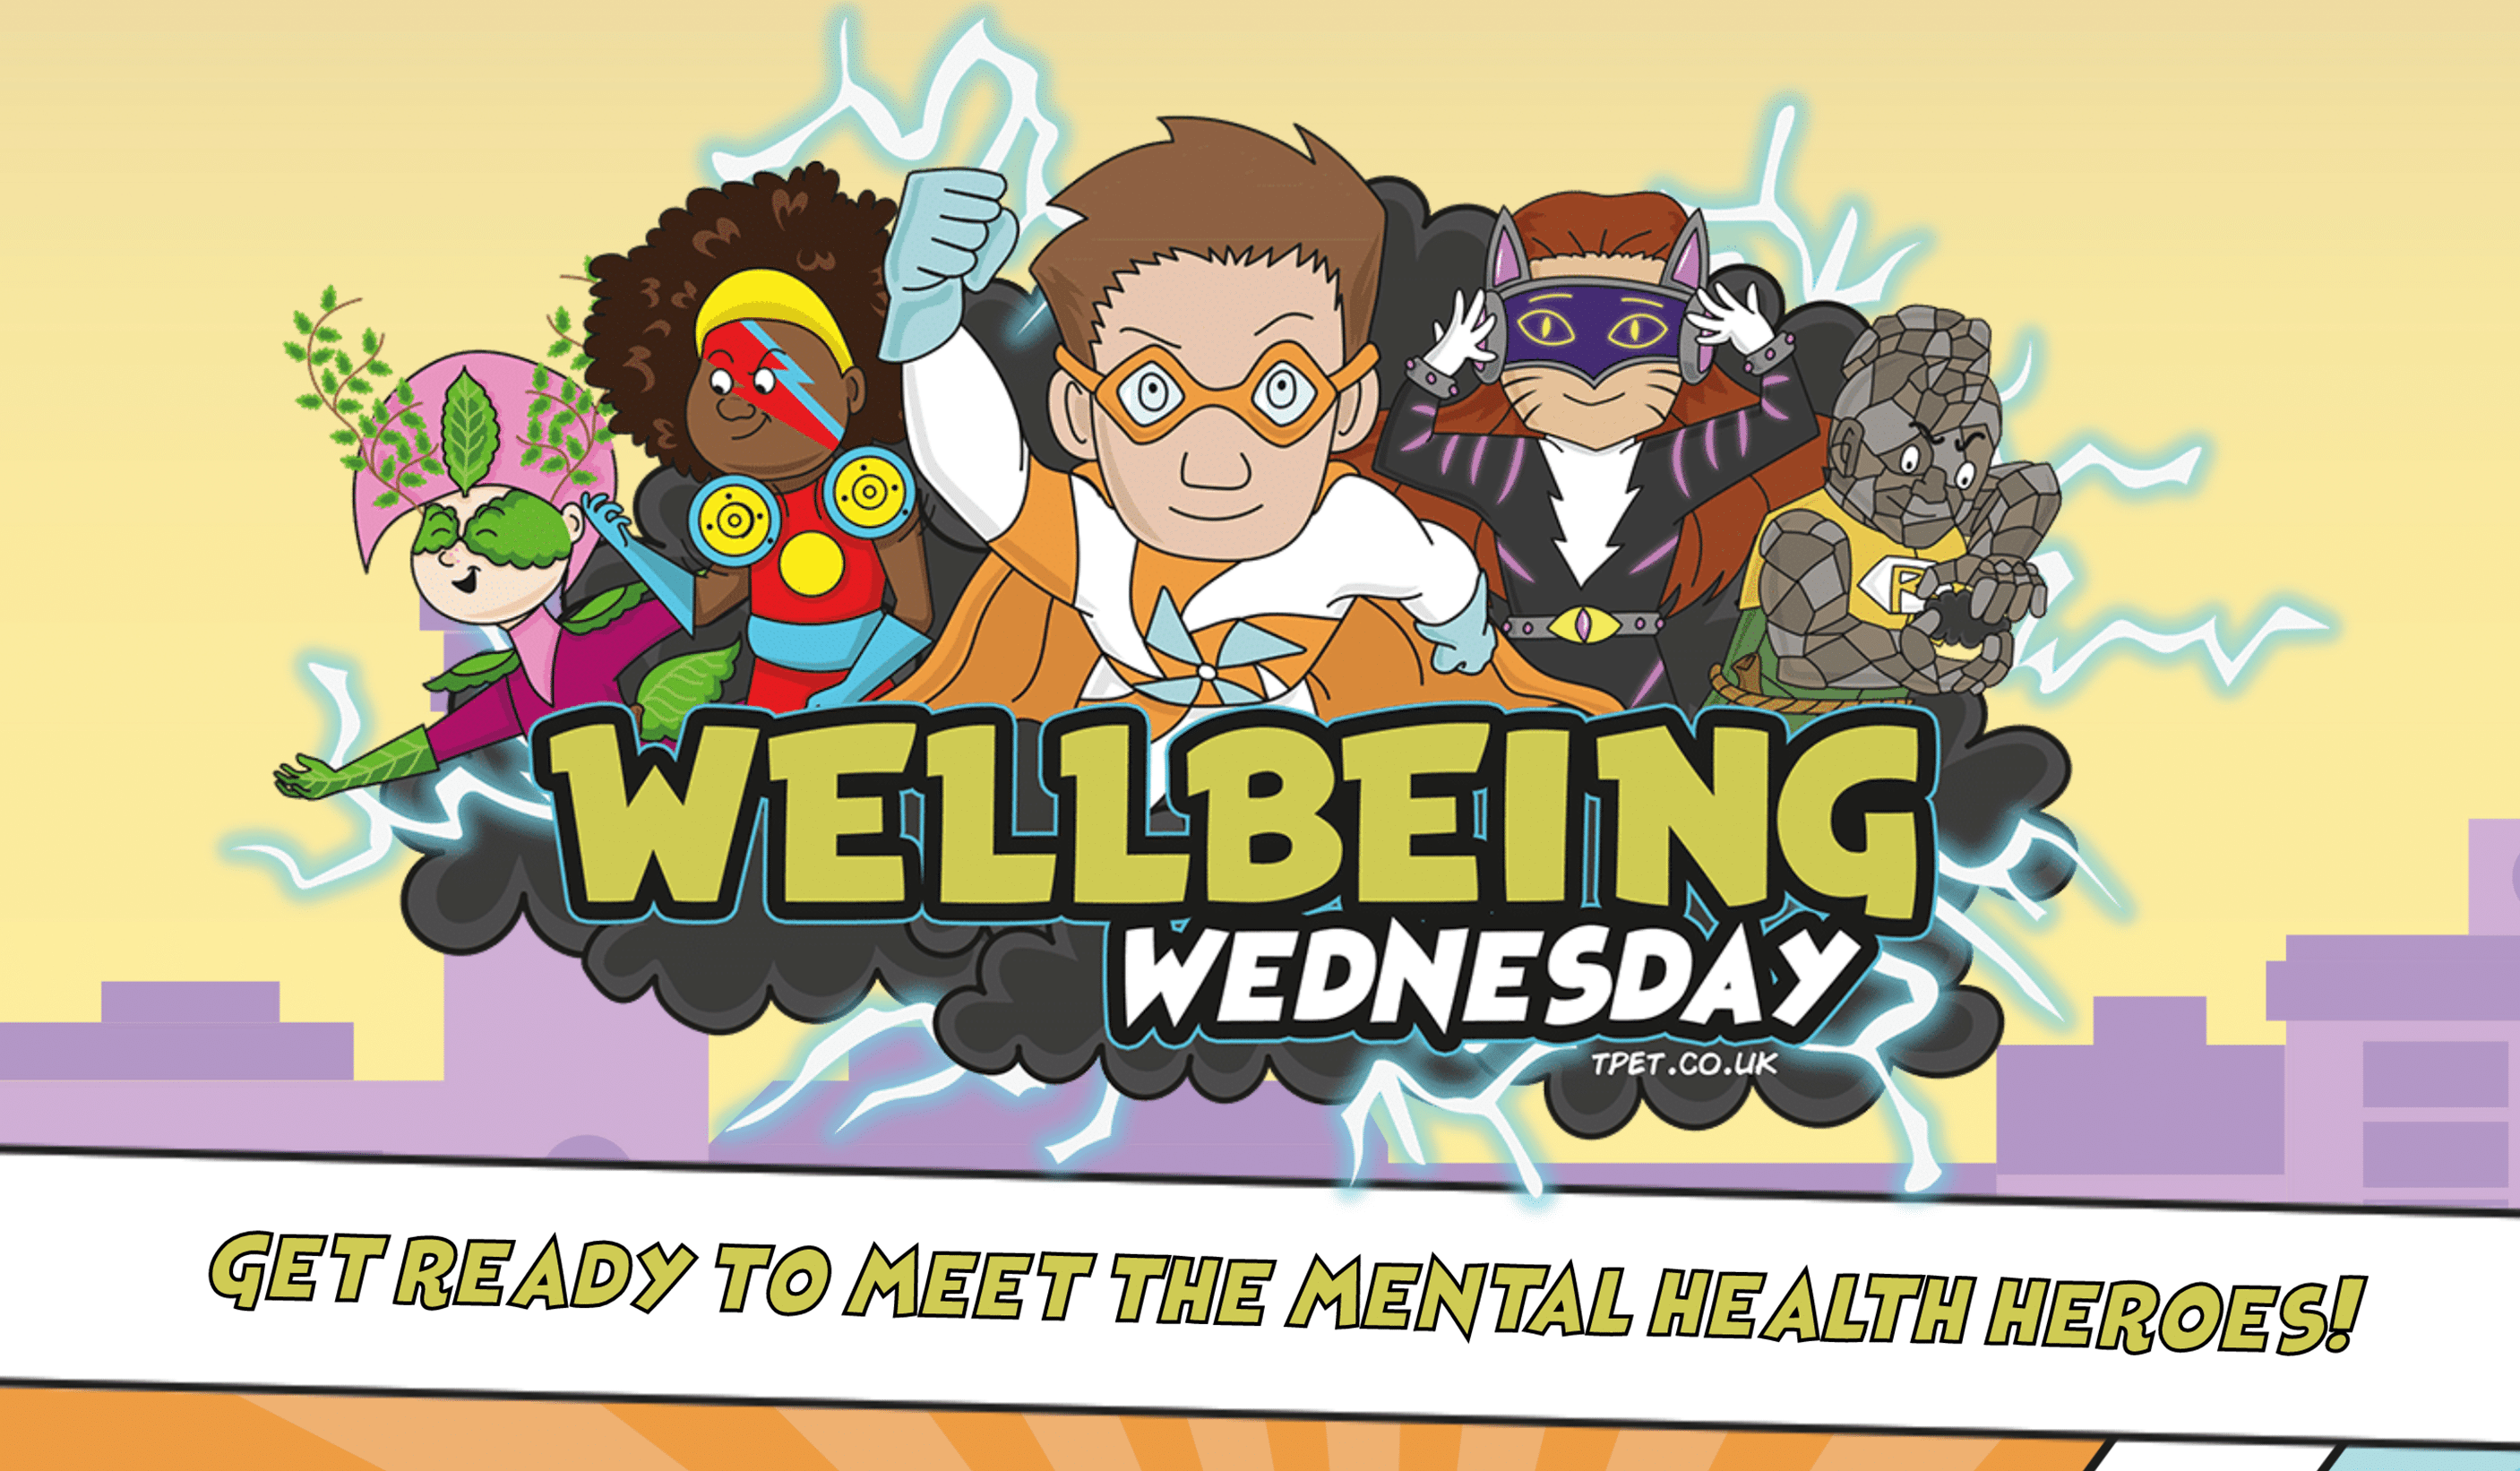 #WellbeingWednesday is Back With The #MentalHealthHeroes!